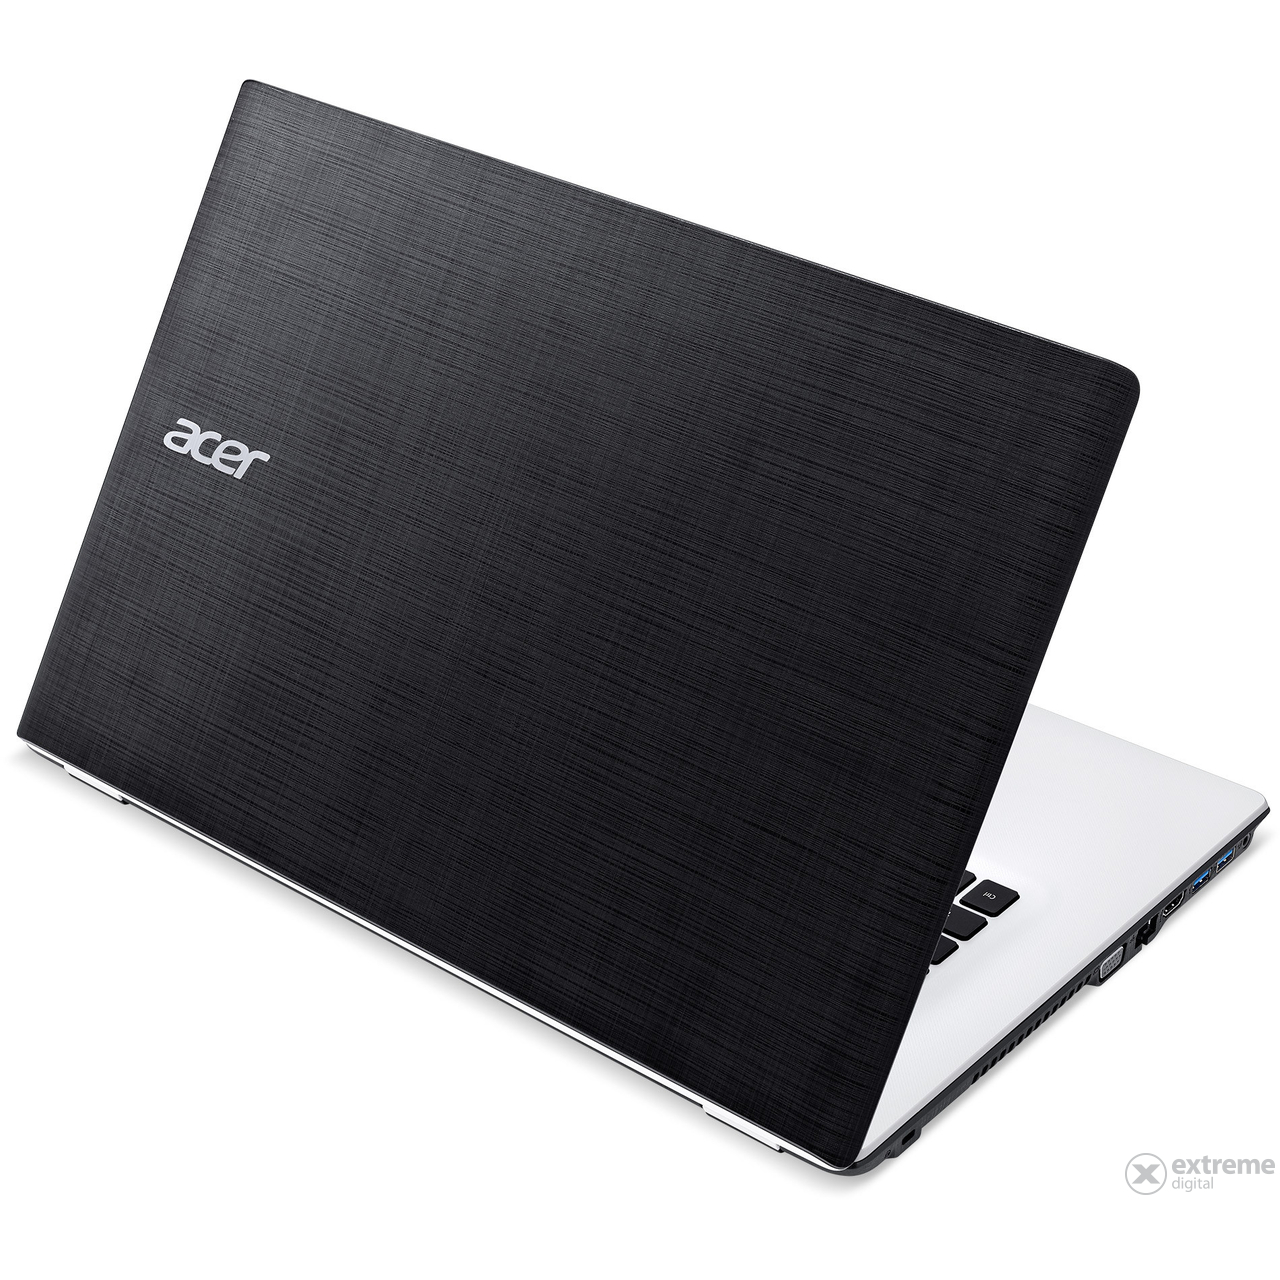 acer-aspire-e5-573-nx-mw2eu-021-notebook-windows-10-fekete-feher-microsoft-office-365-personal_df24c323.jpg